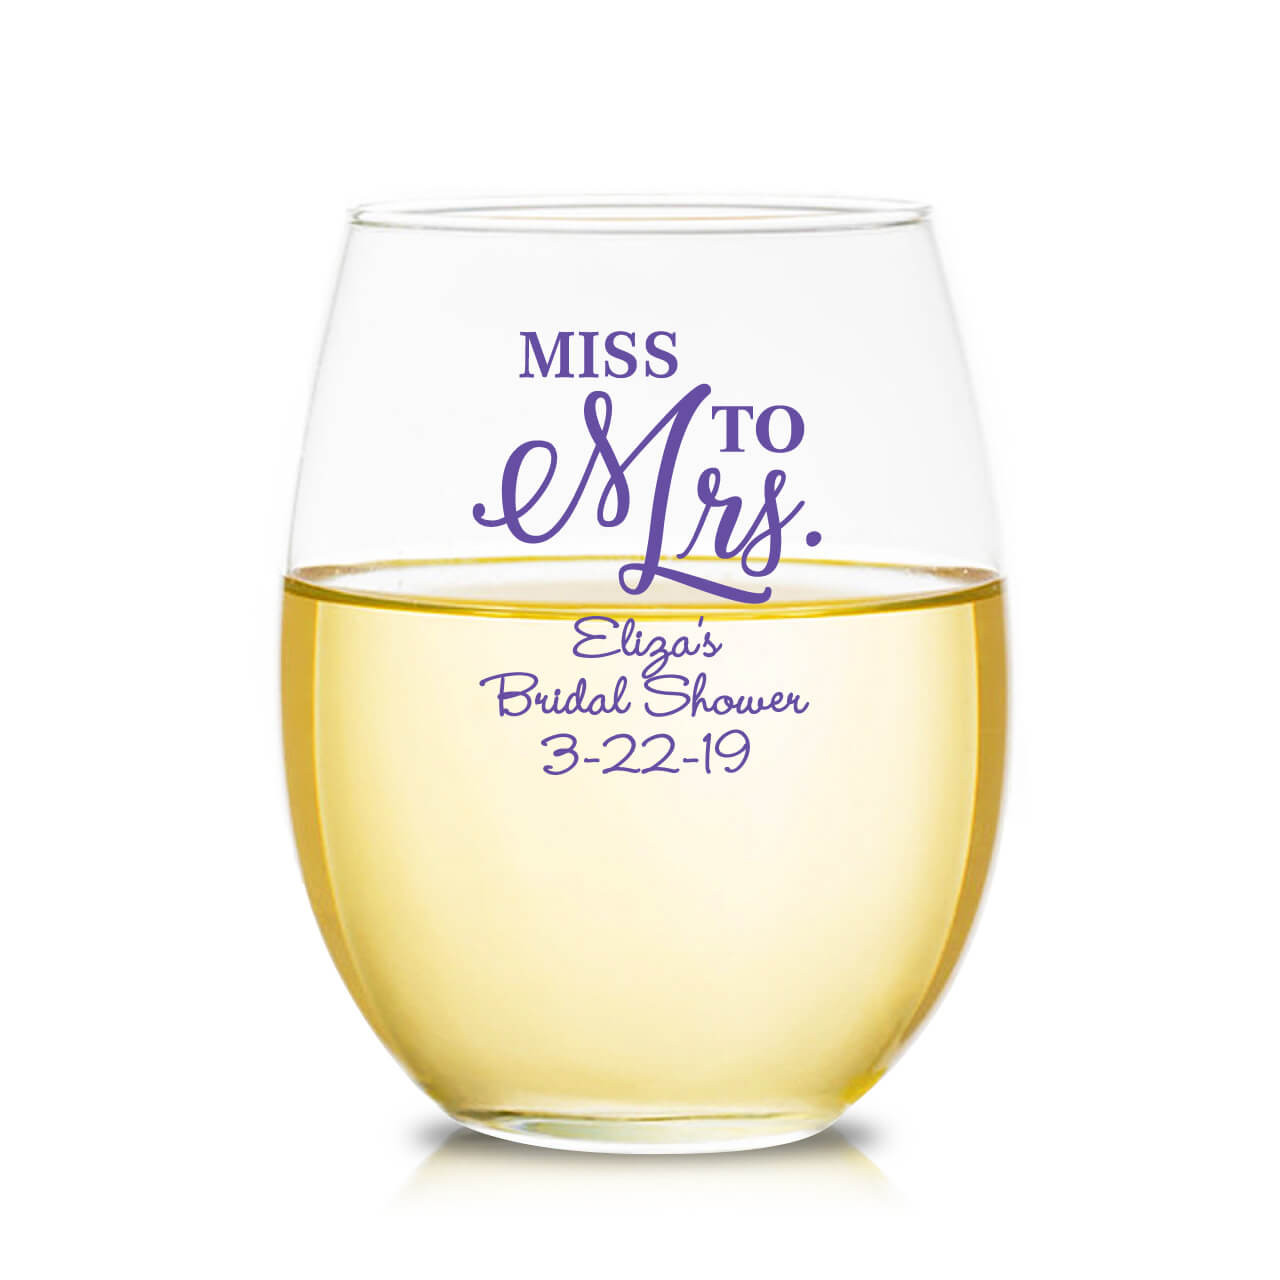 Miss to mrs personalized 9 oz stemless wine glass favors flowers